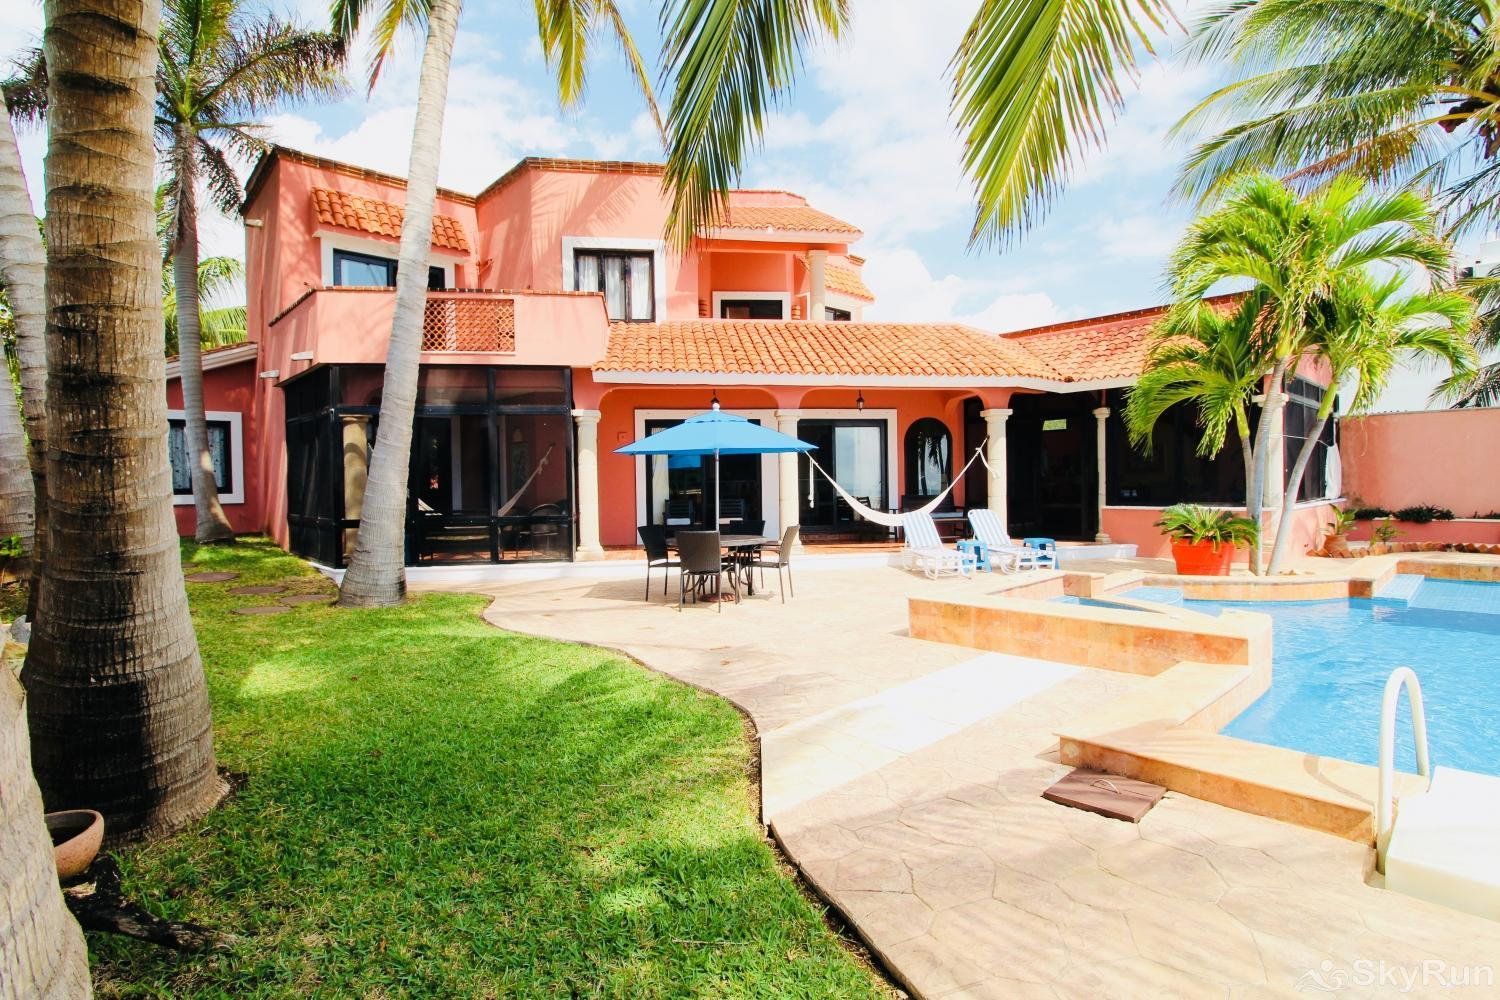 Casa South Breeze 34